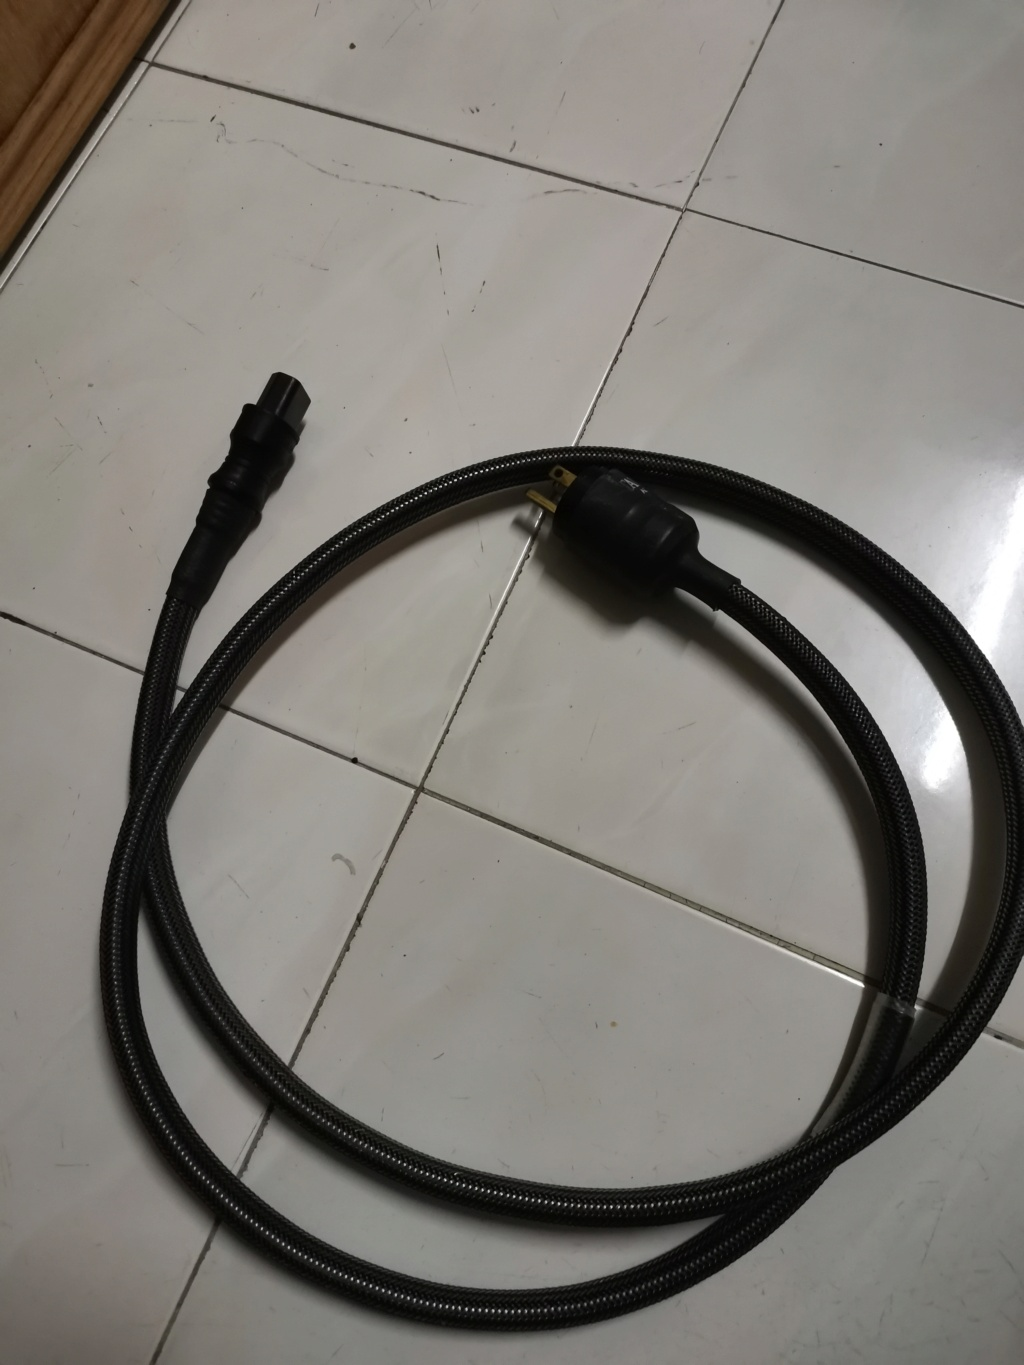 TARA labs TL-AC Power Cable SOLD Img_2406